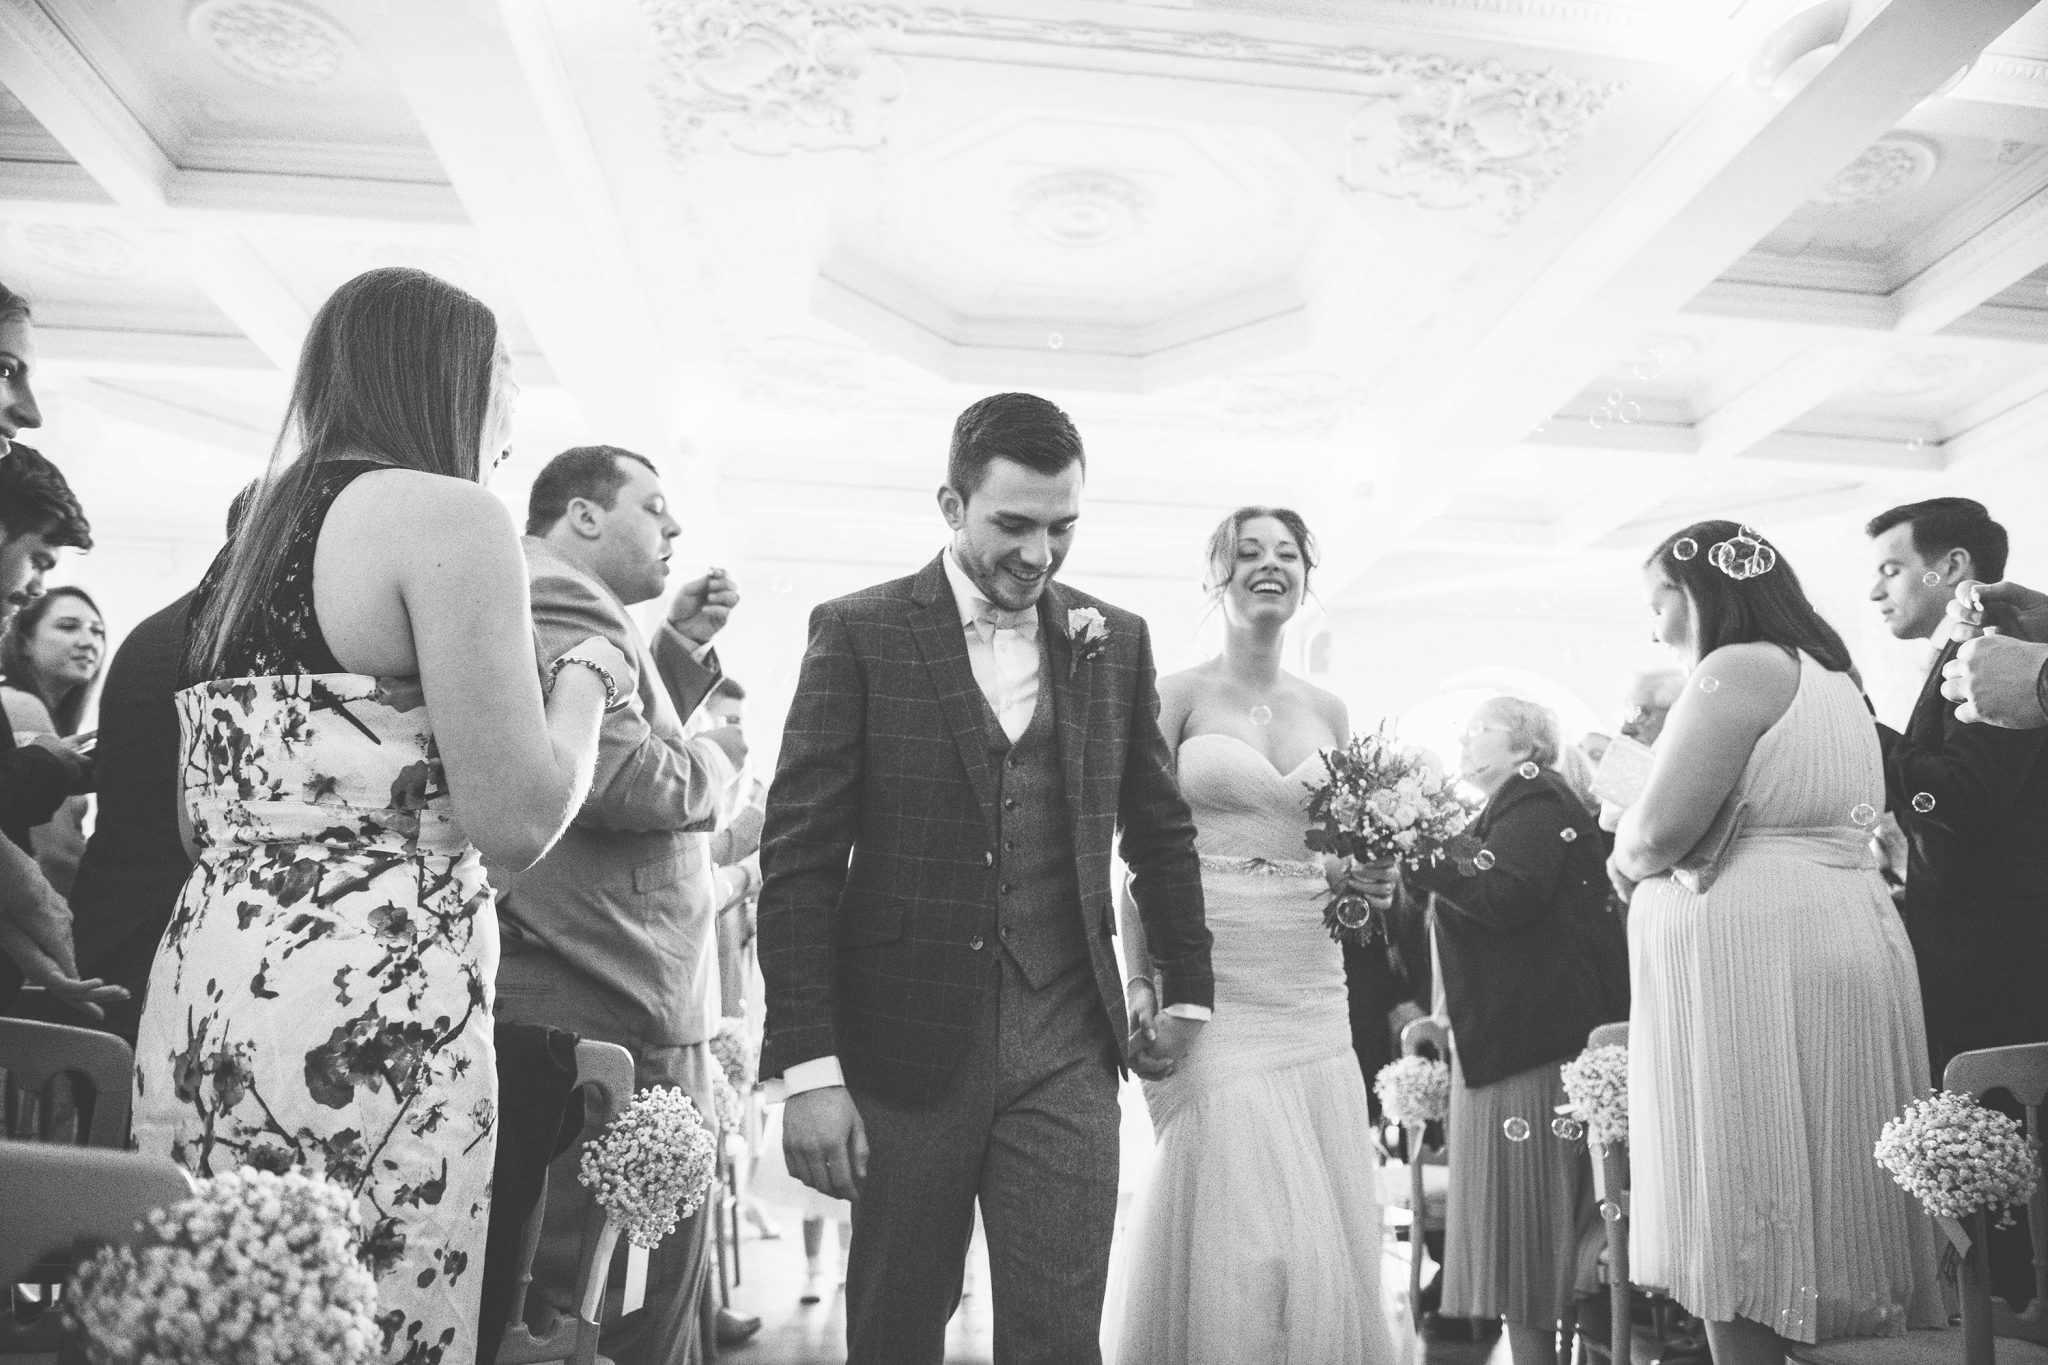 Lauren and Scotts wedding at The Dome, Worthing – 31st March 2018